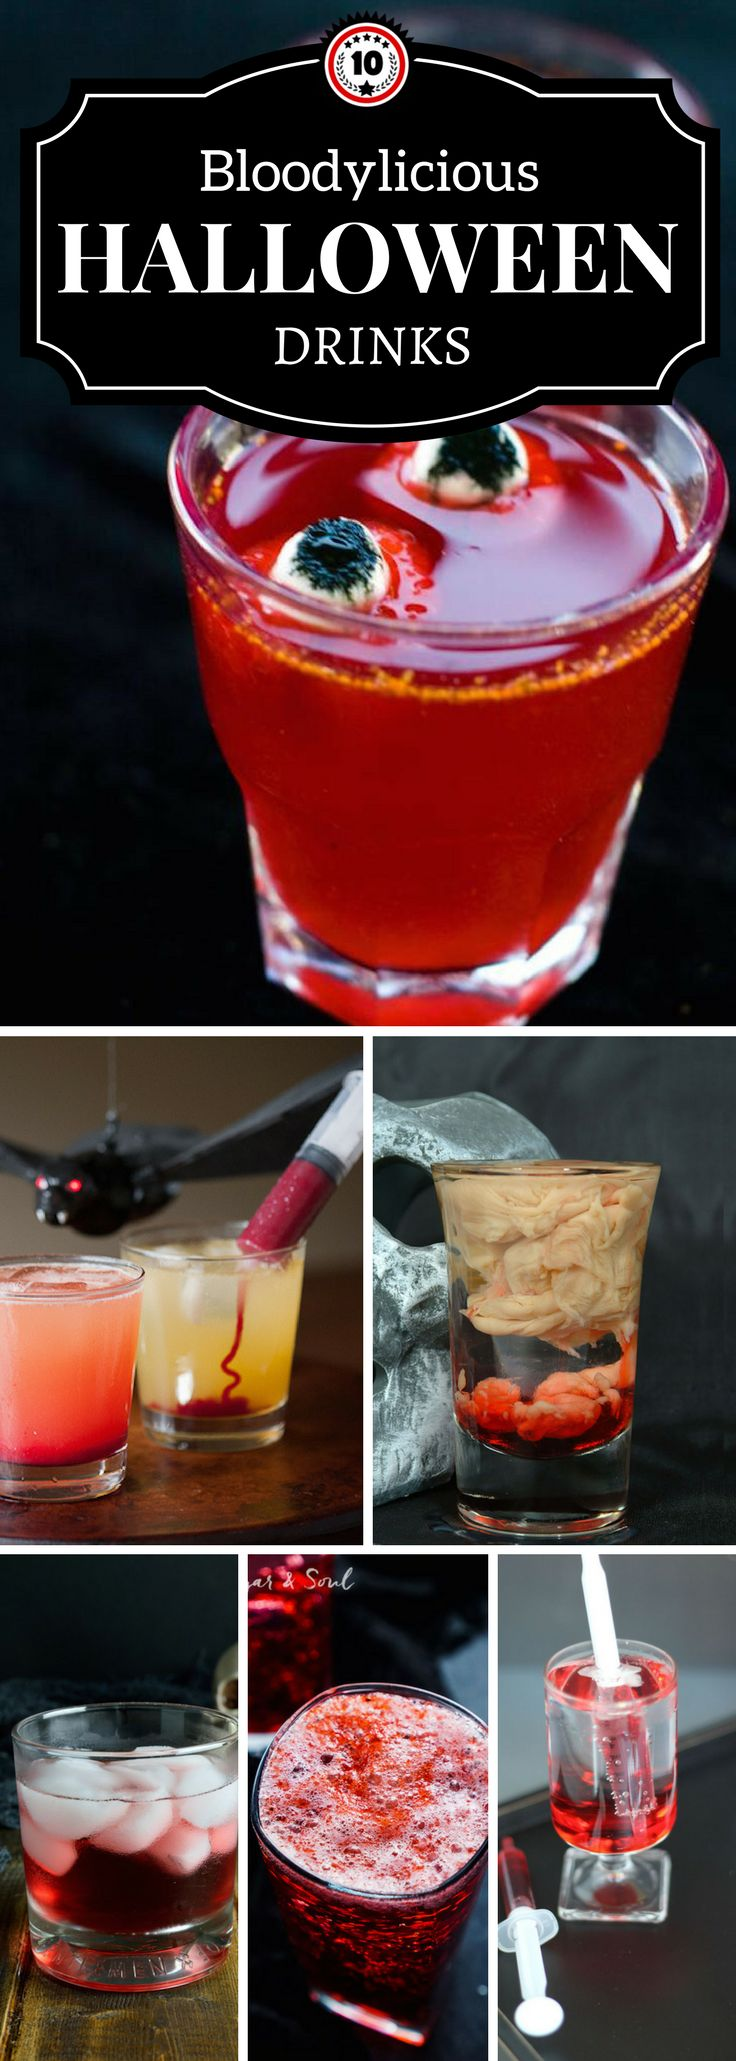 Best 25 halloween drinks ideas on pinterest adult for Alcoholic drinks for halloween punch